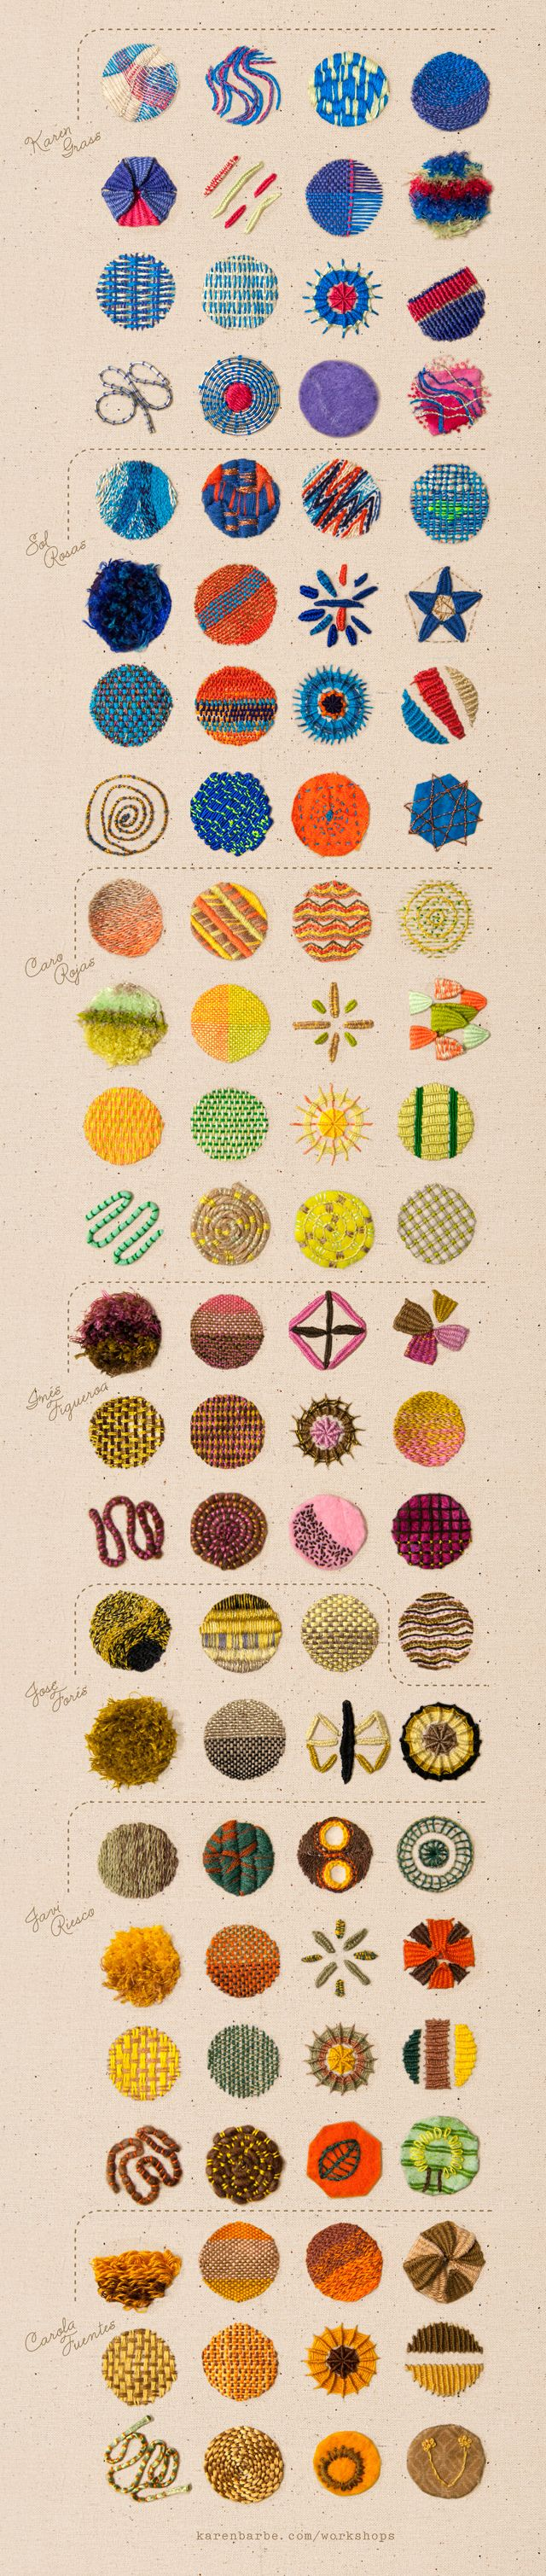 Textileria: 96 embroidery samples